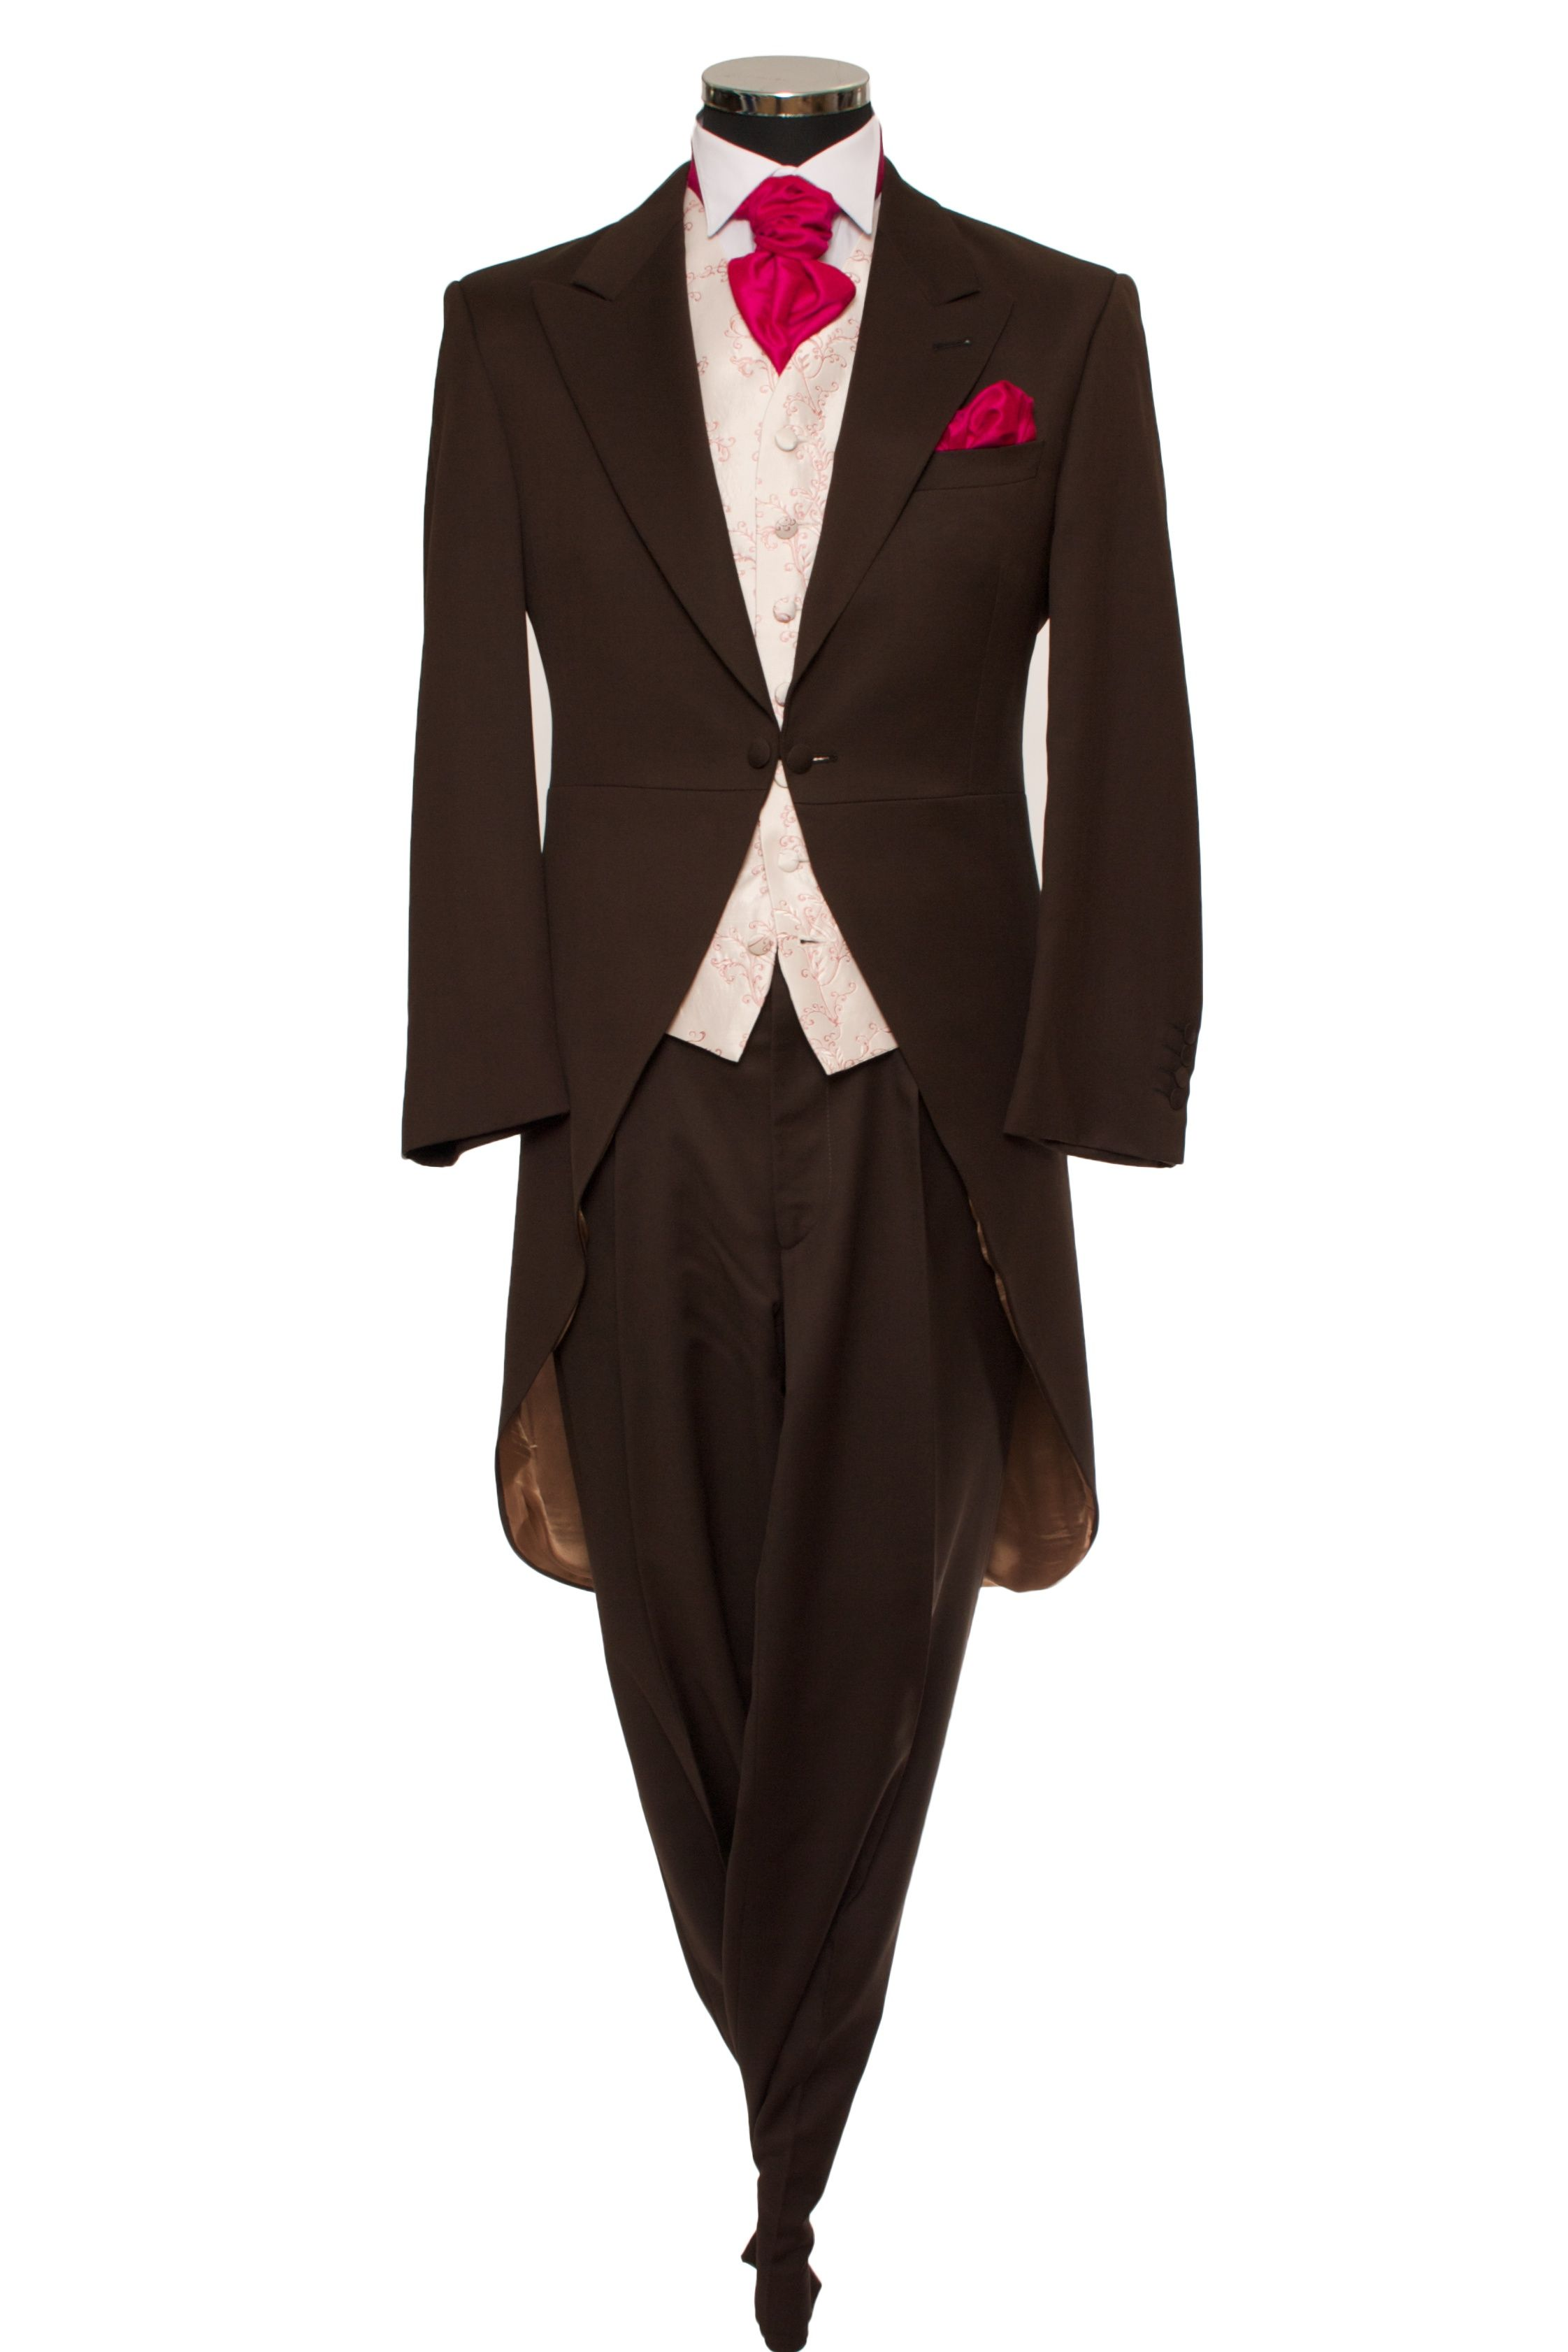 Our Brown Slim cut and lightweight morning suit (Tails). Dressed ...